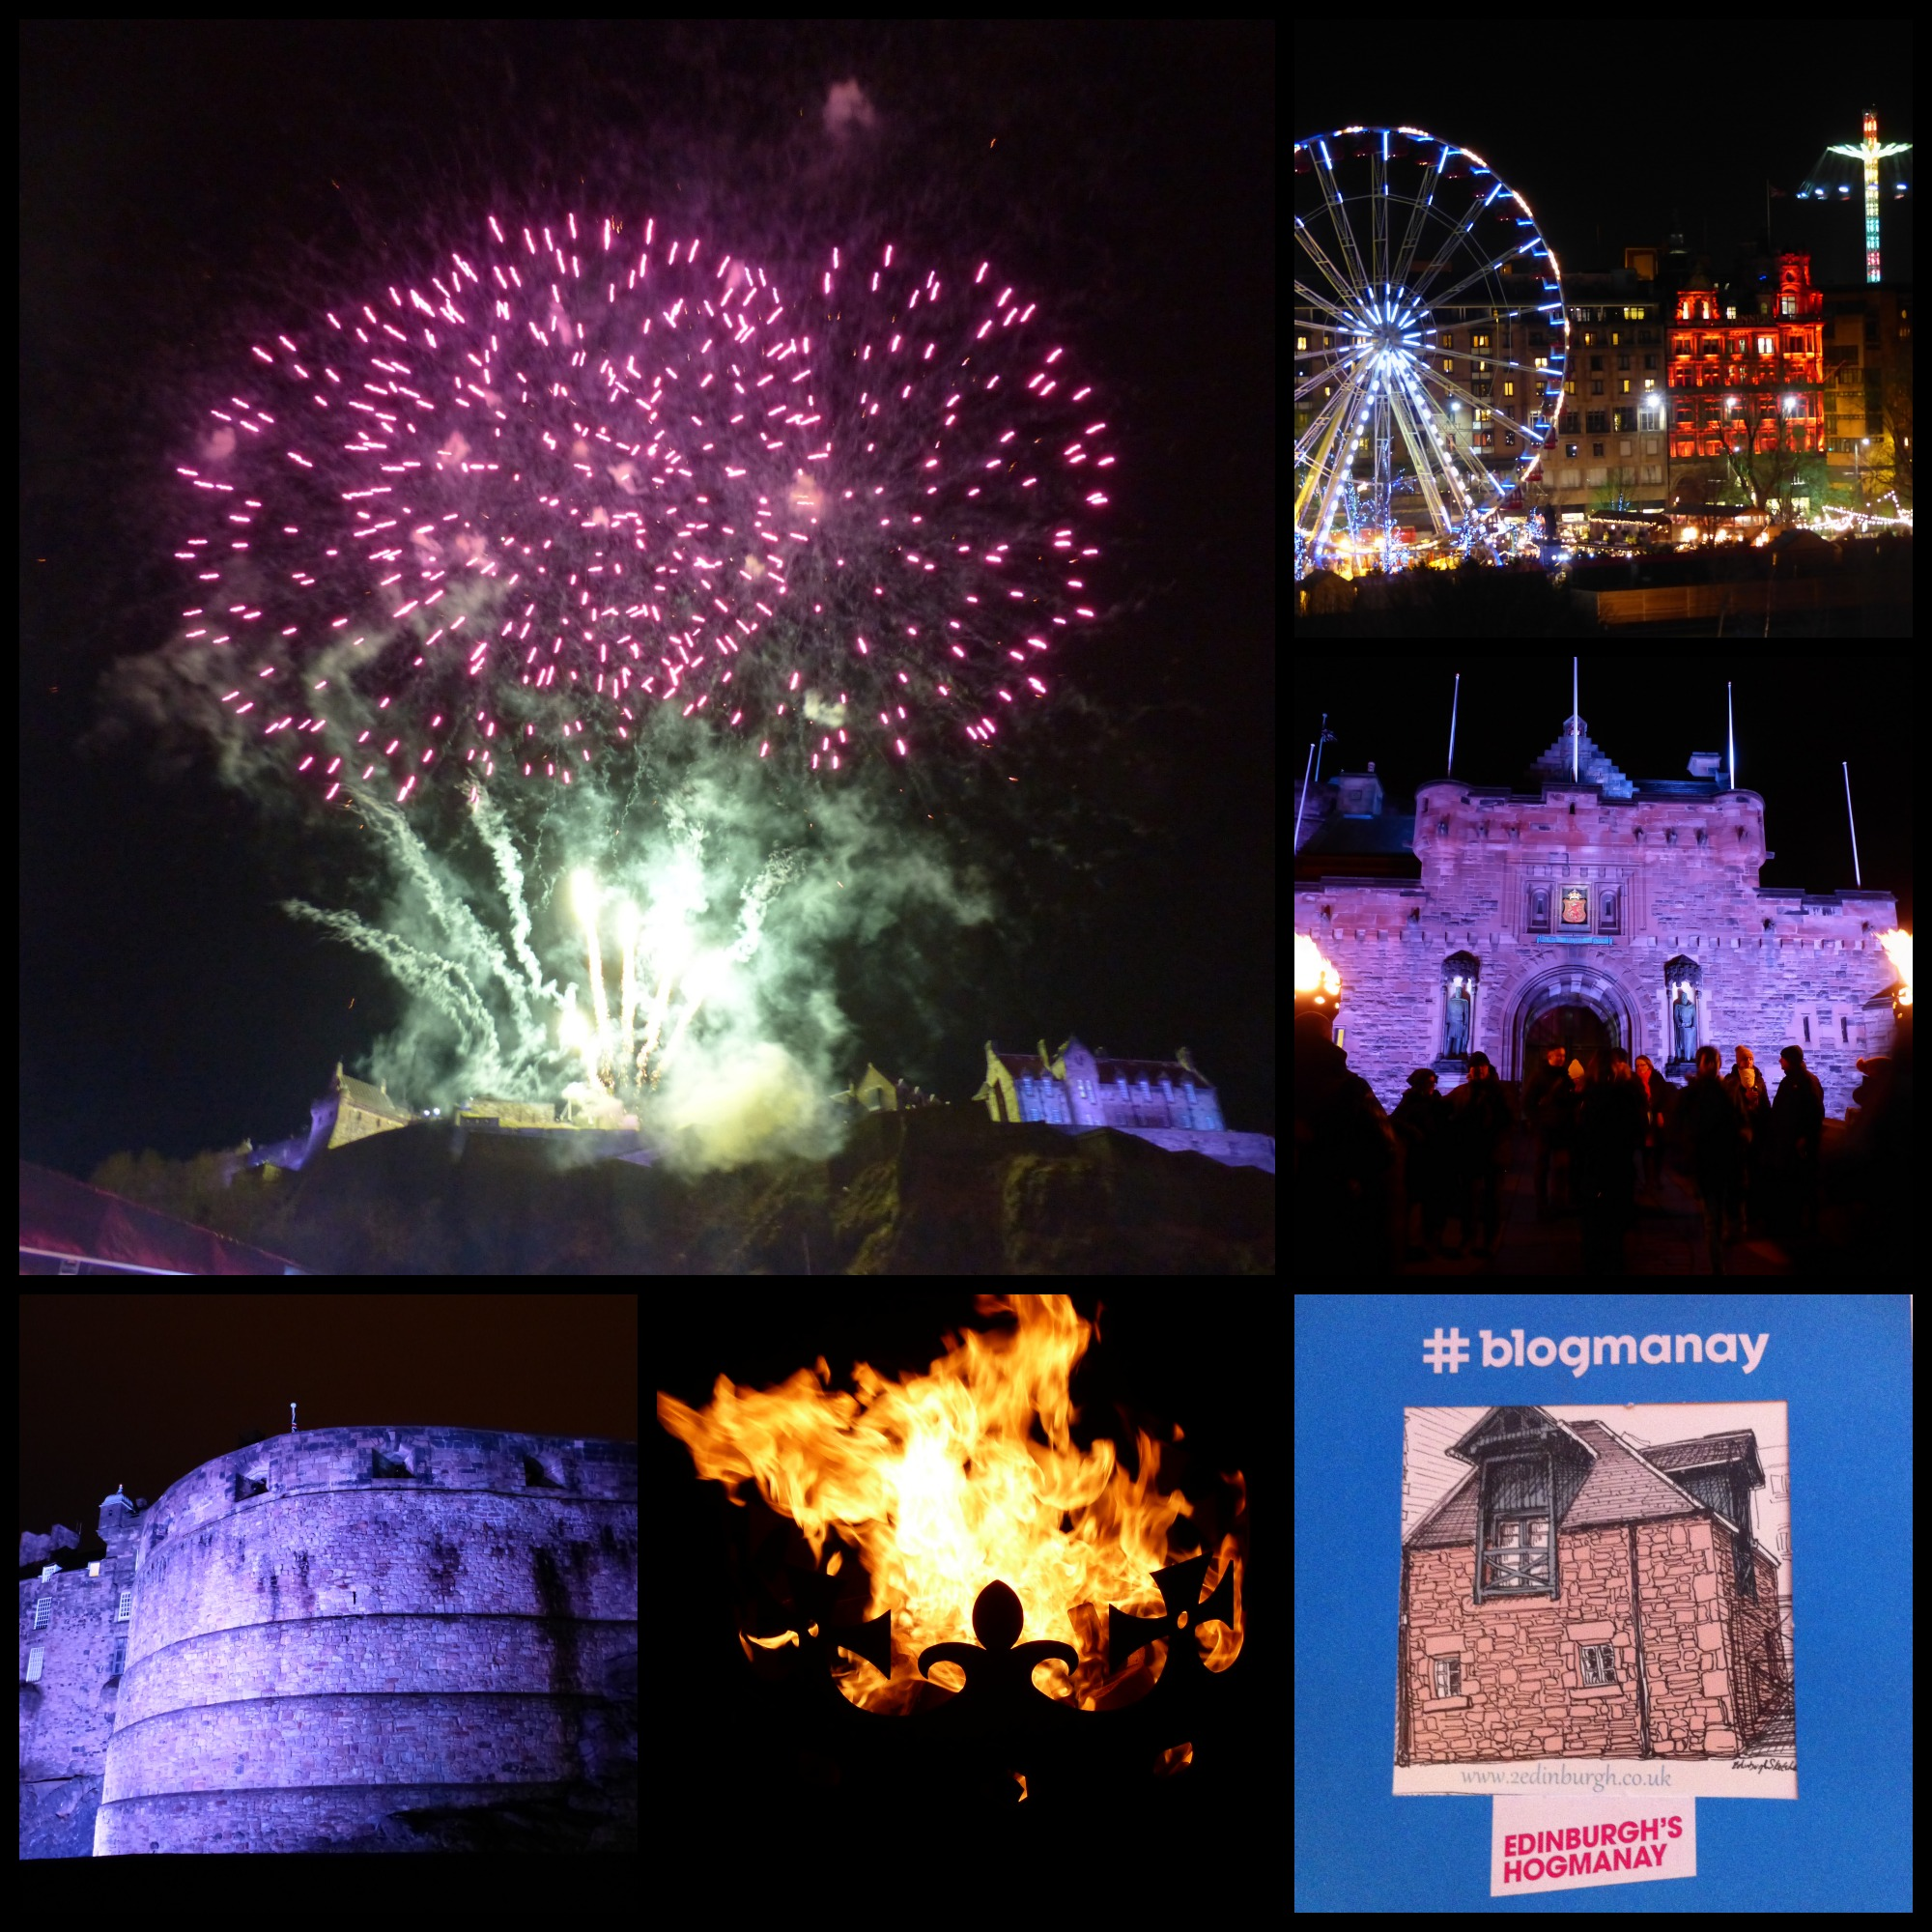 Bring in the New Year in Edinburgh #blogmanay